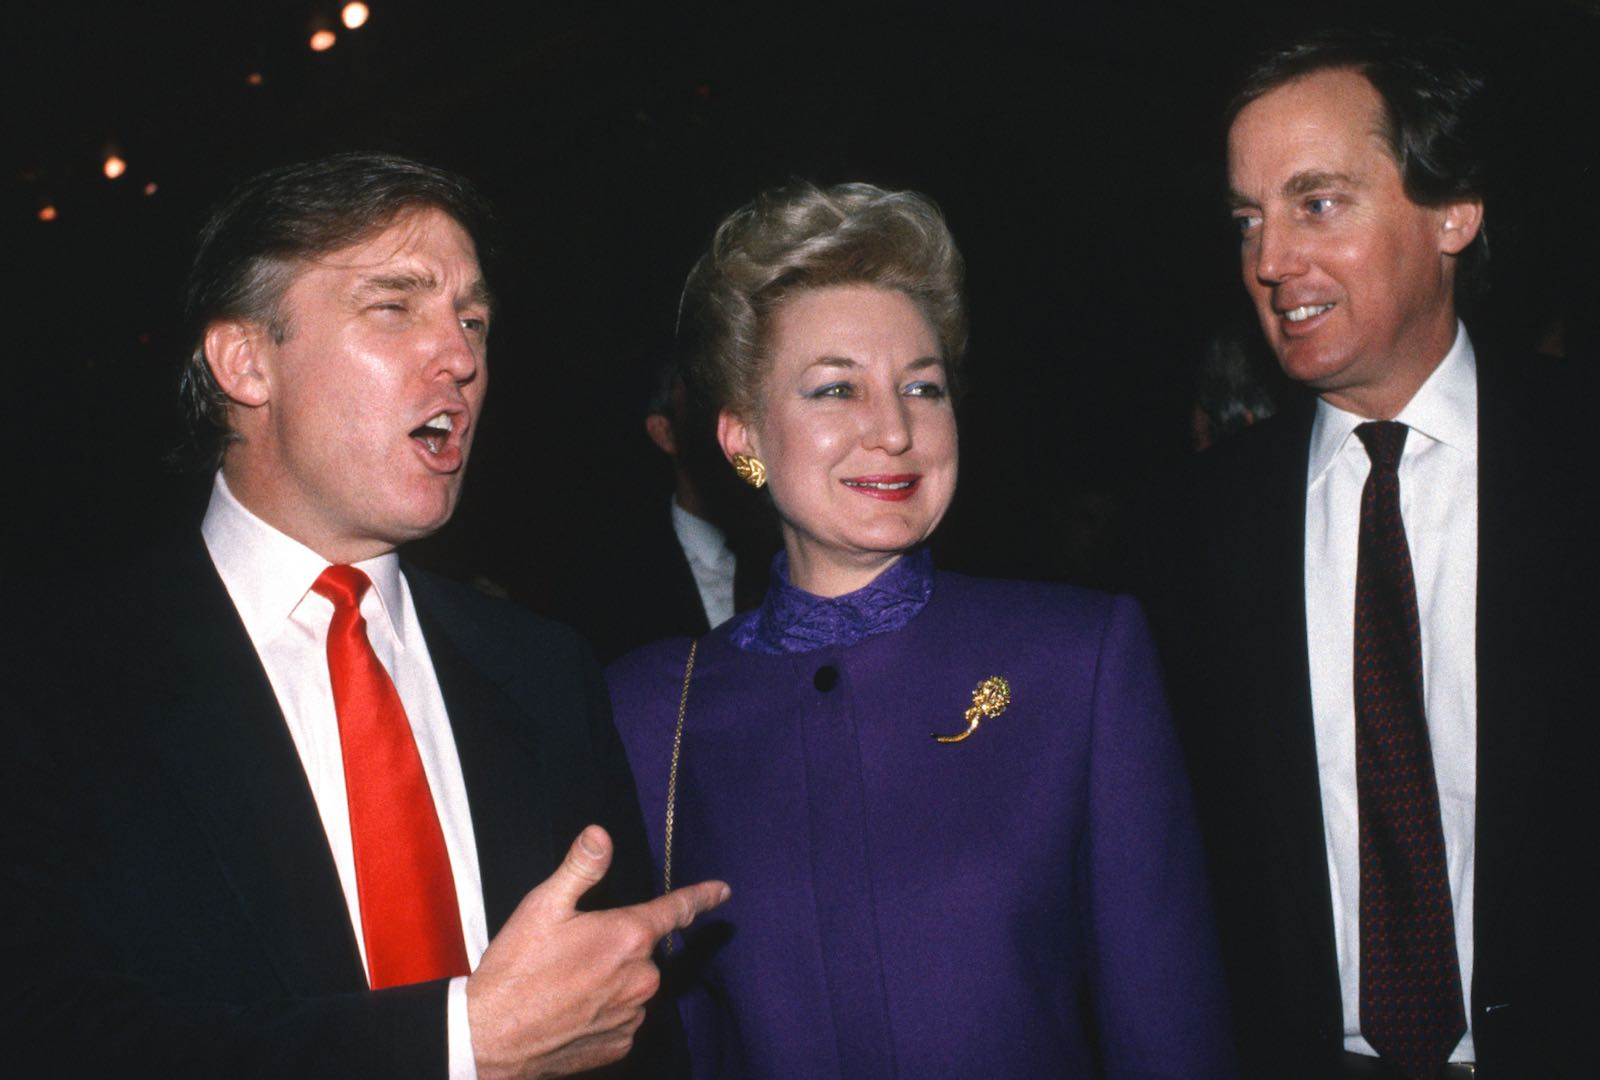 Donald Trump with sister Maryanne and brother Robert, 1990